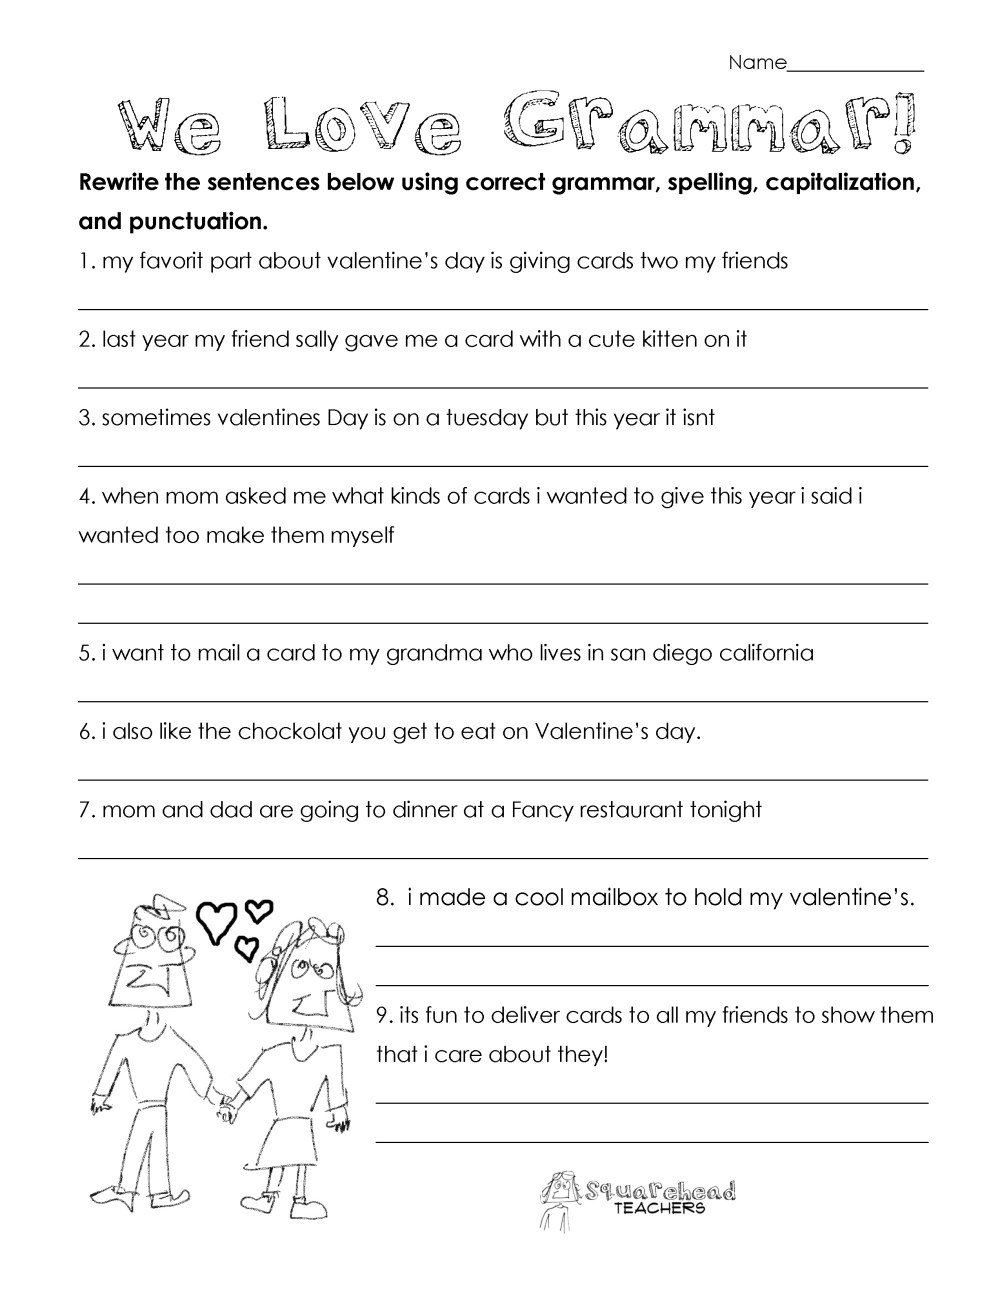 medium resolution of Valentine's Day Grammar (free worksheet for 3rd grade and up)   Squarehead  Teachers